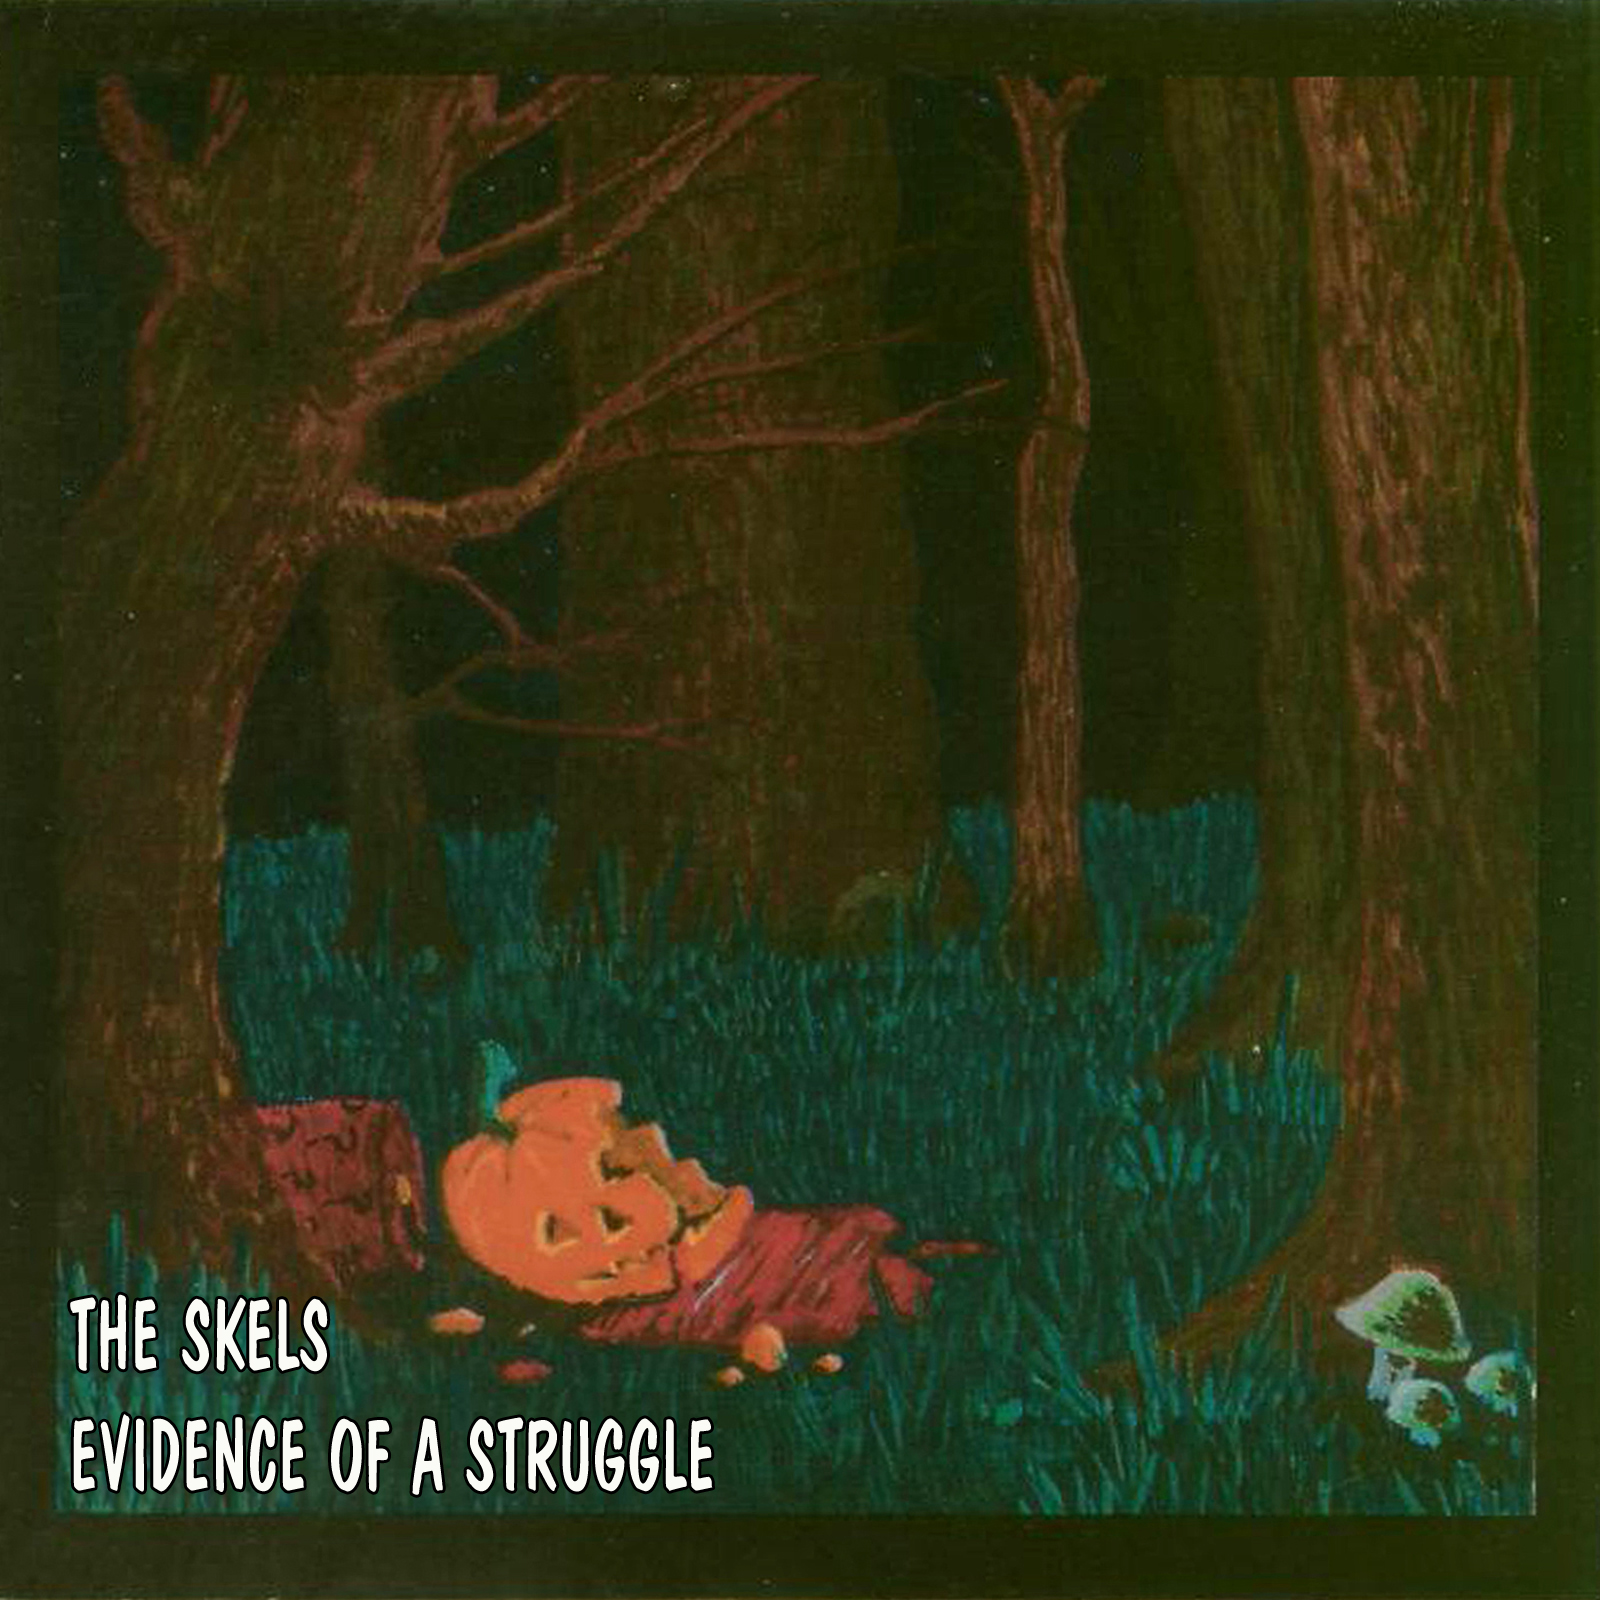 The Skels - Evidence of A Struggle